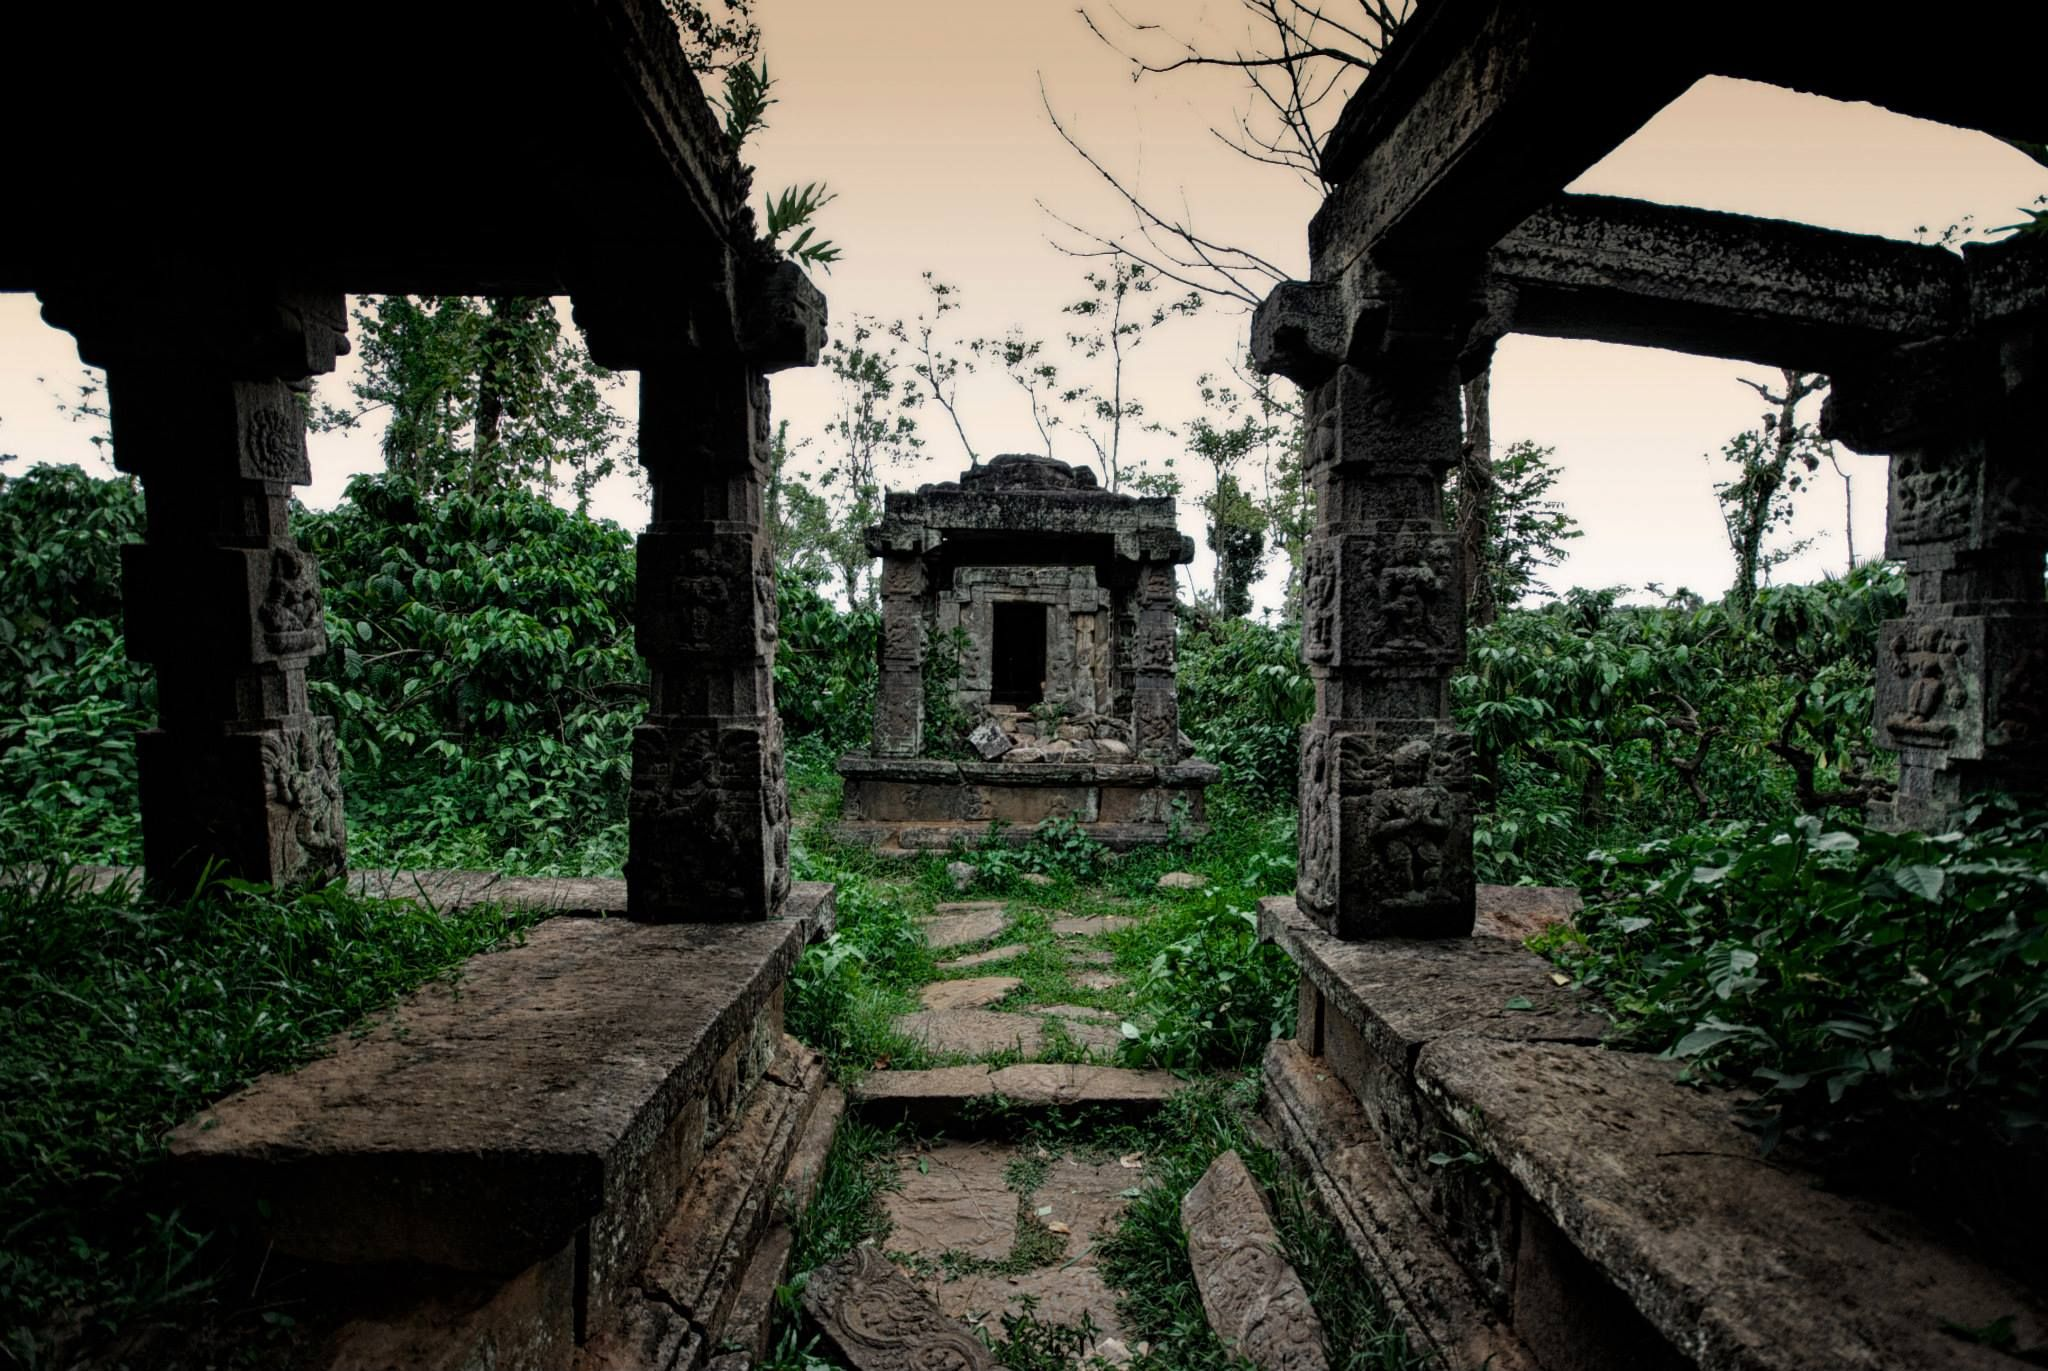 Pin on Places to visit in Kerala